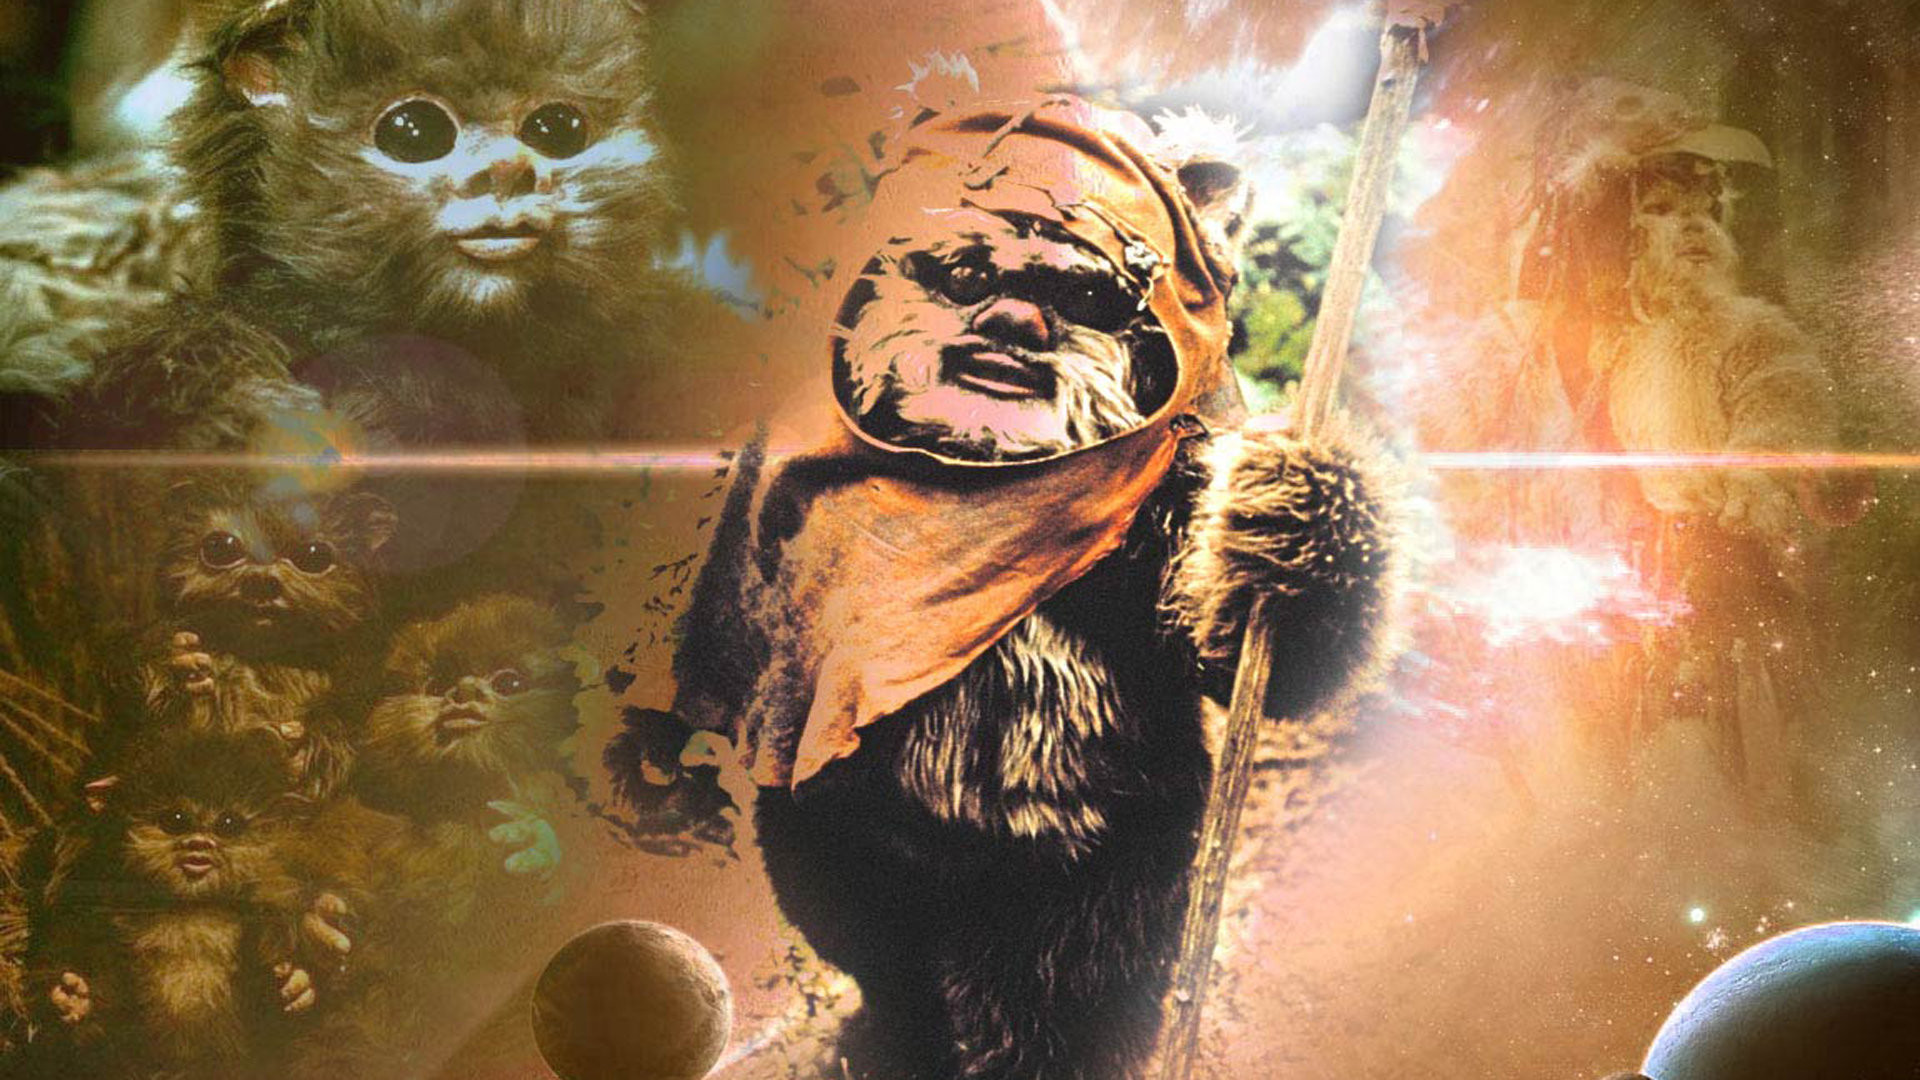 ewoks the battle for endor original   1920x1080 1920x1080